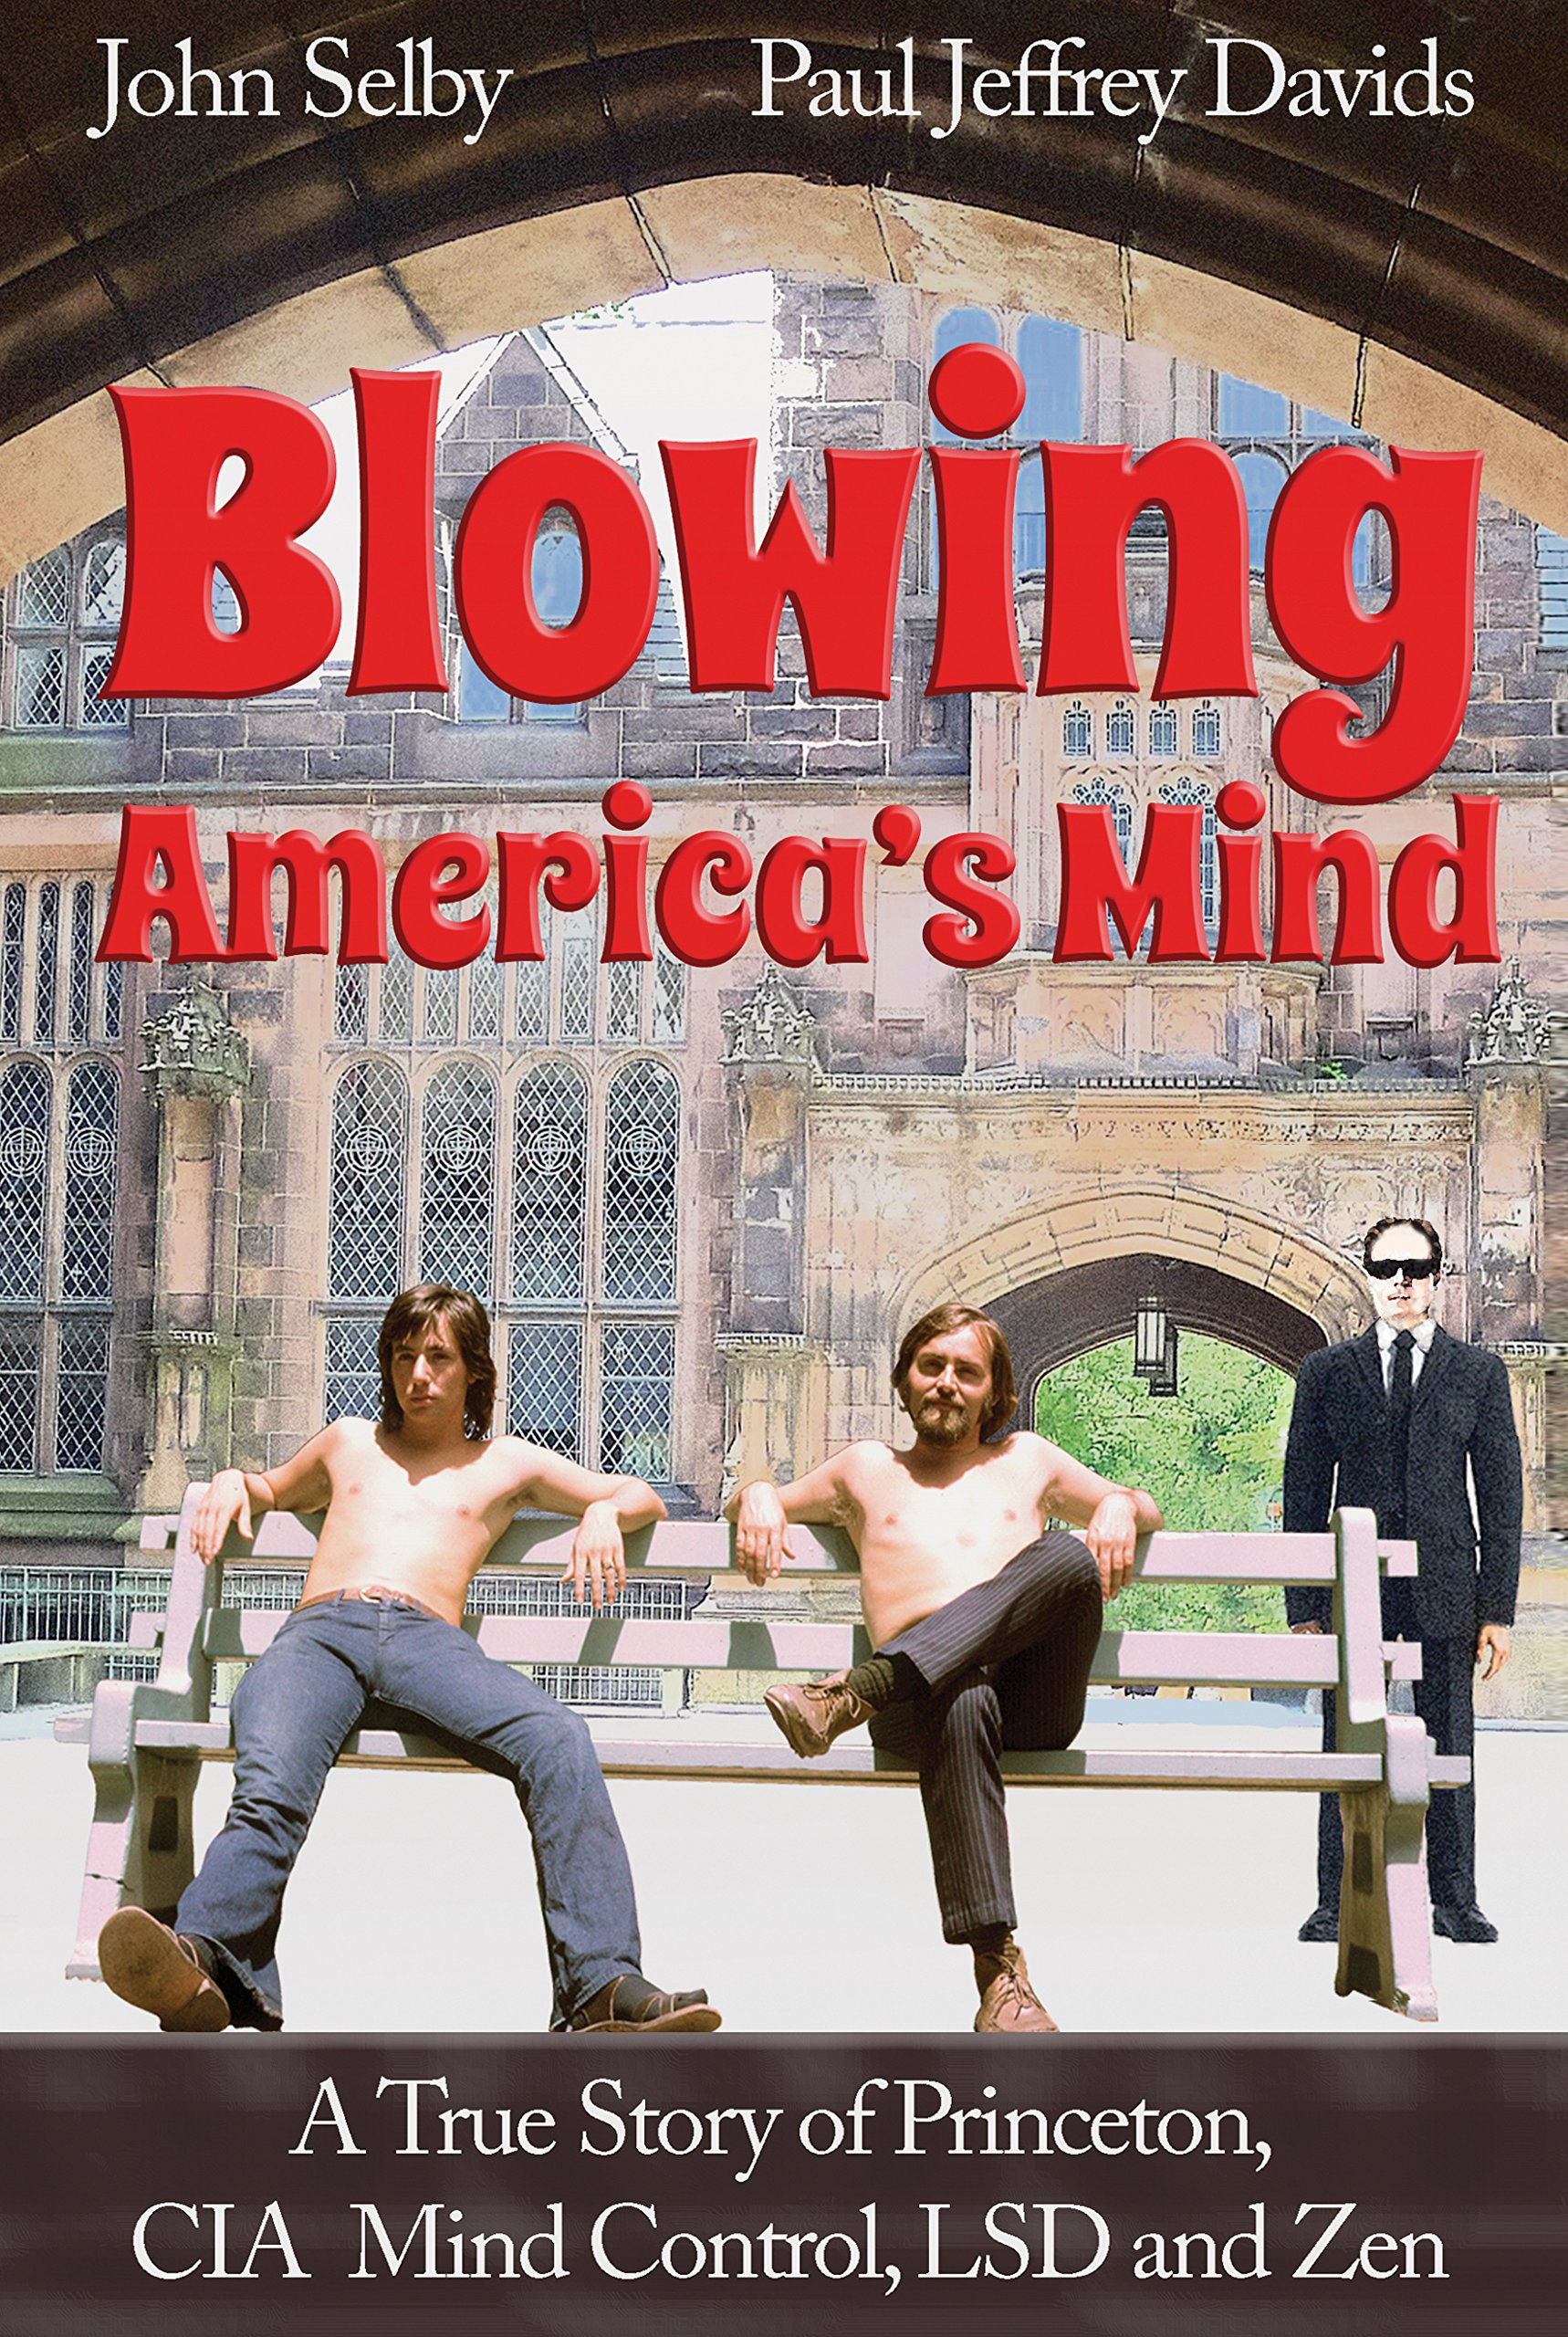 Blowing America's Mind: A True Story of Princeton, CIA Mind Control, LSD and Zen by Paul Davids